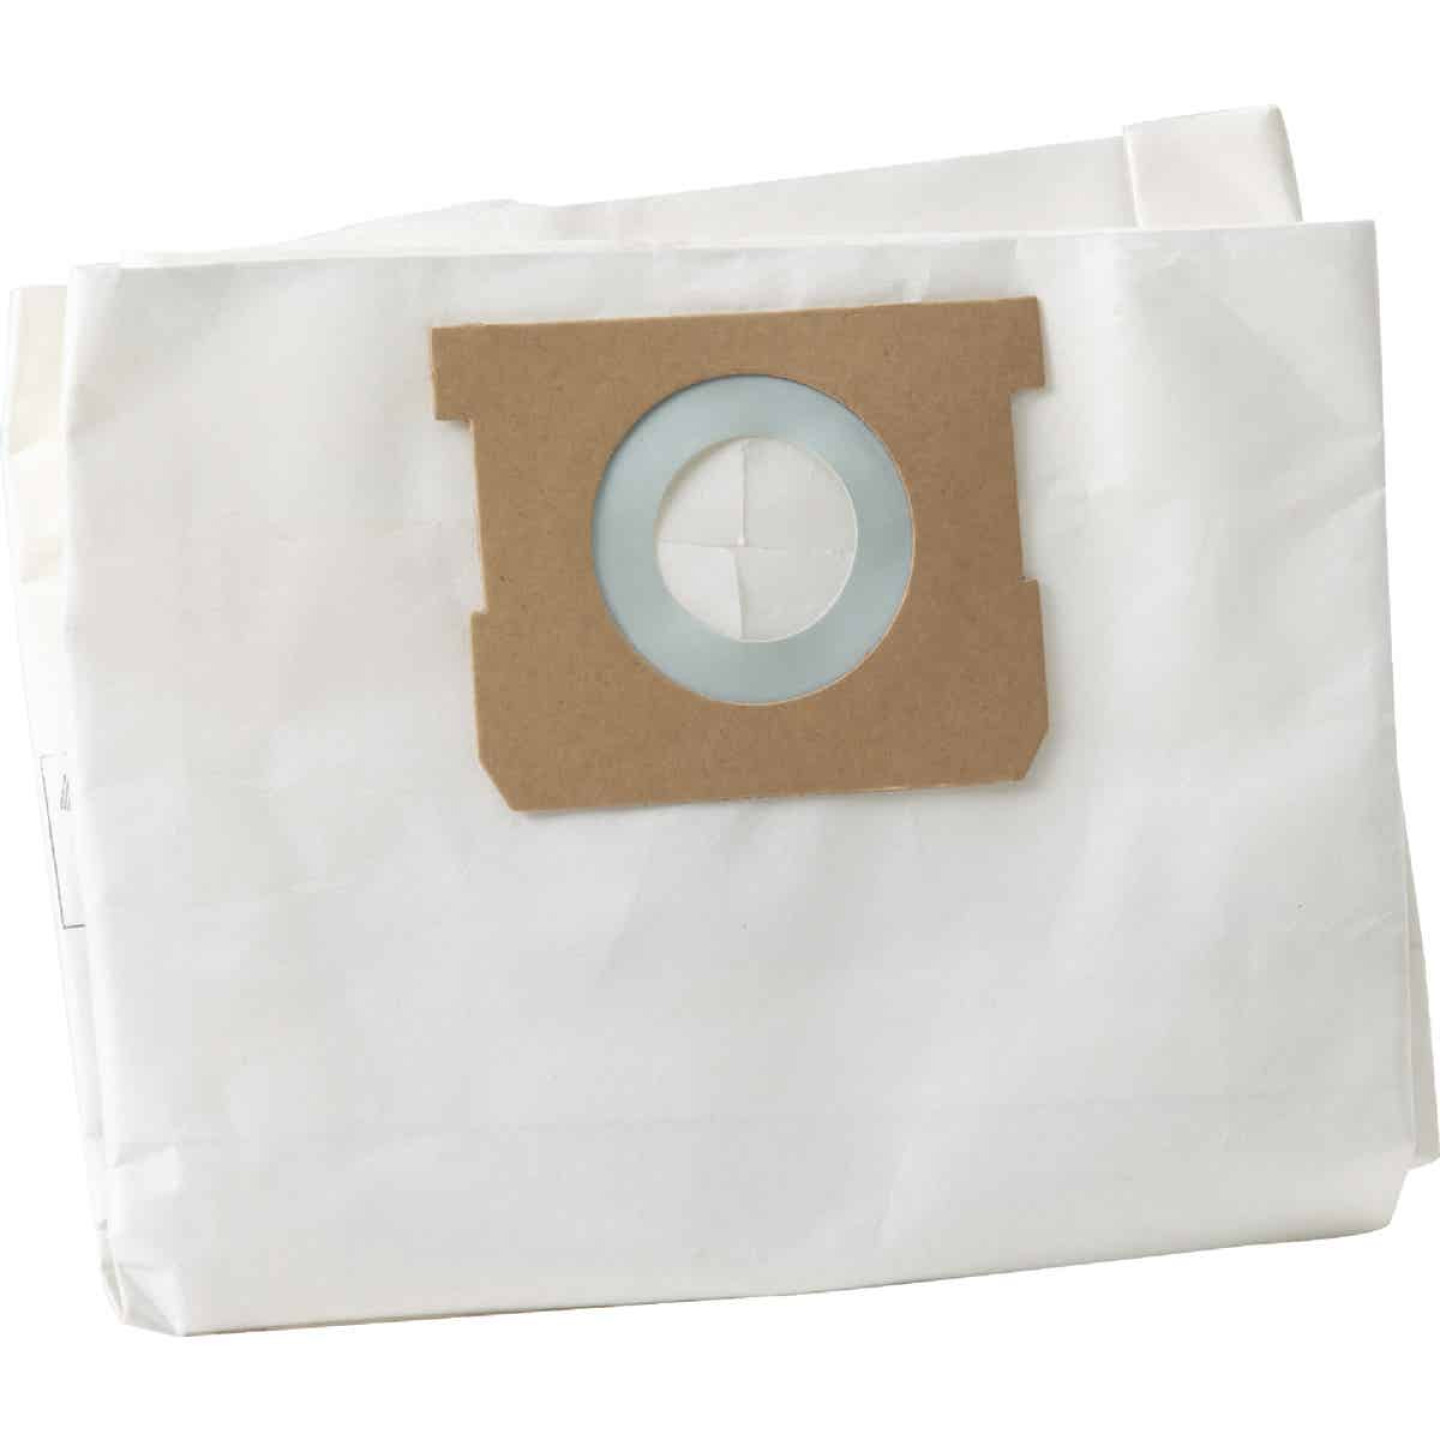 Channellock Paper Standard 12 to 16 Gal. Filter Vacuum Bag (3-Pack) Image 1